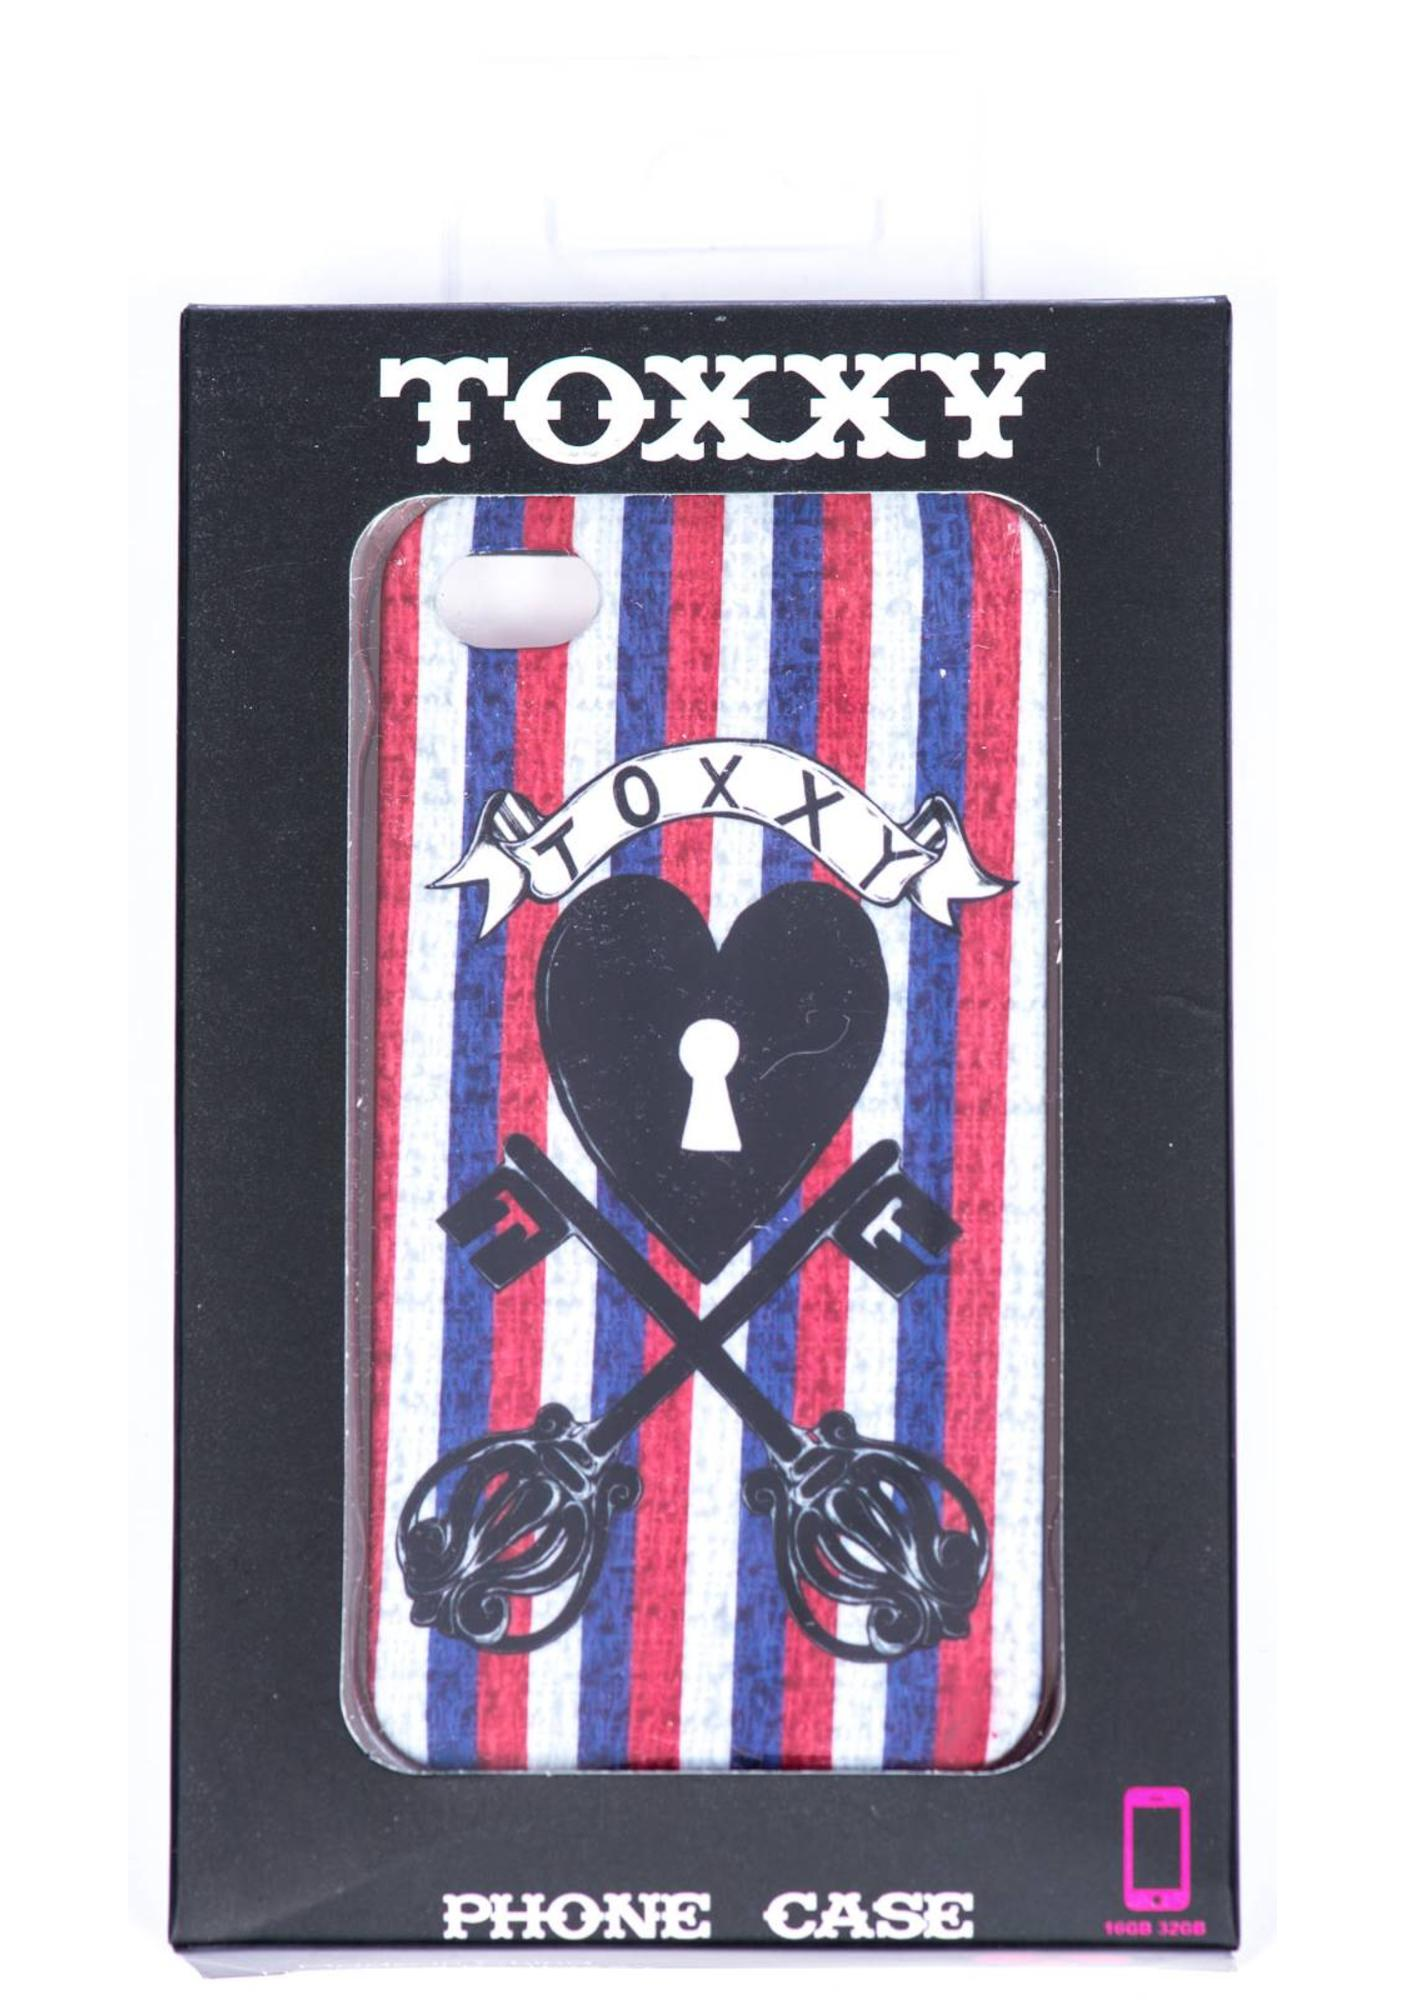 Key Cross iPhone Case